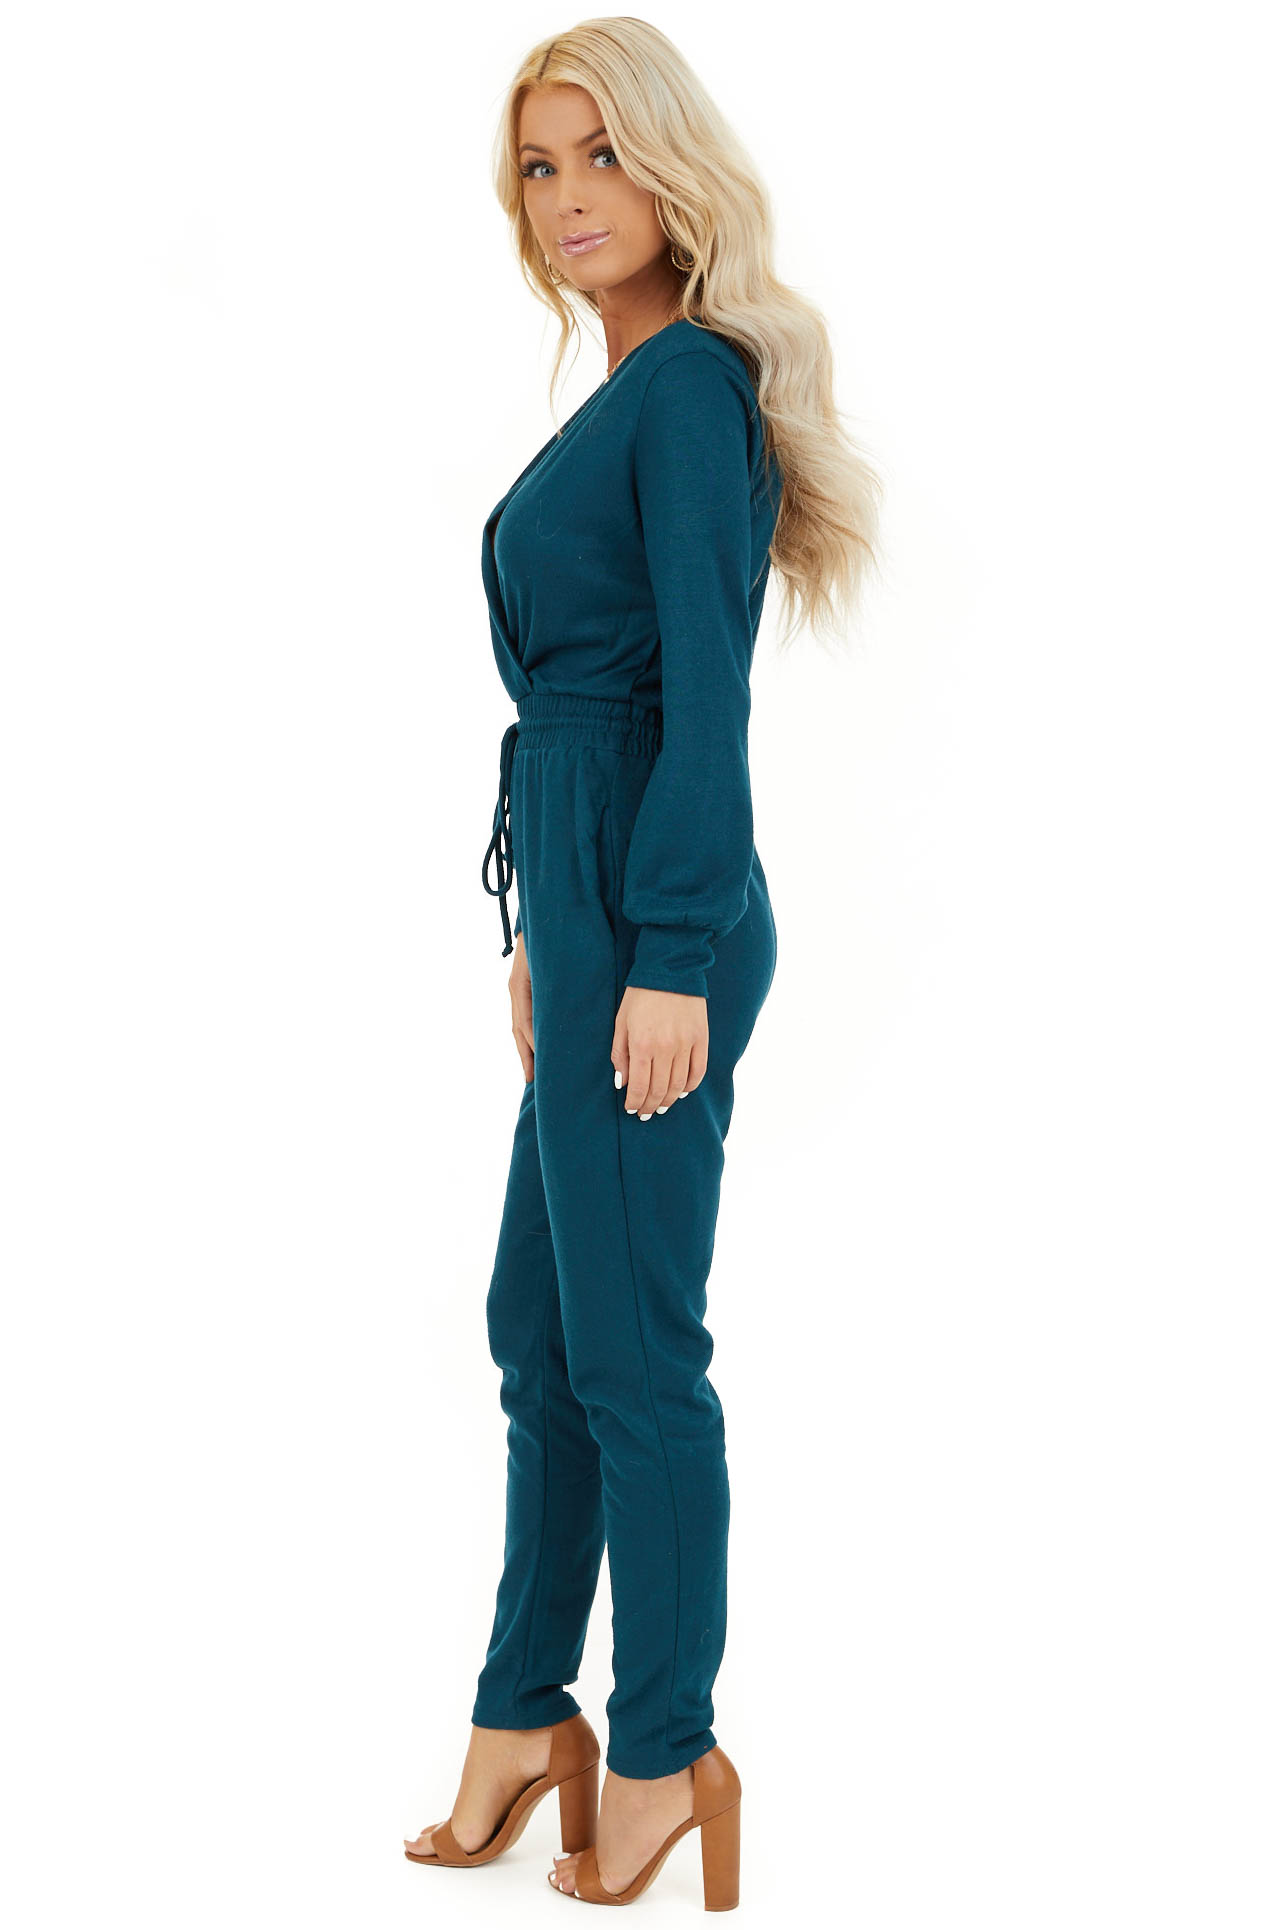 Teal V Neck Jumpsuit with Drawstring Waist and Long Sleeves side full body